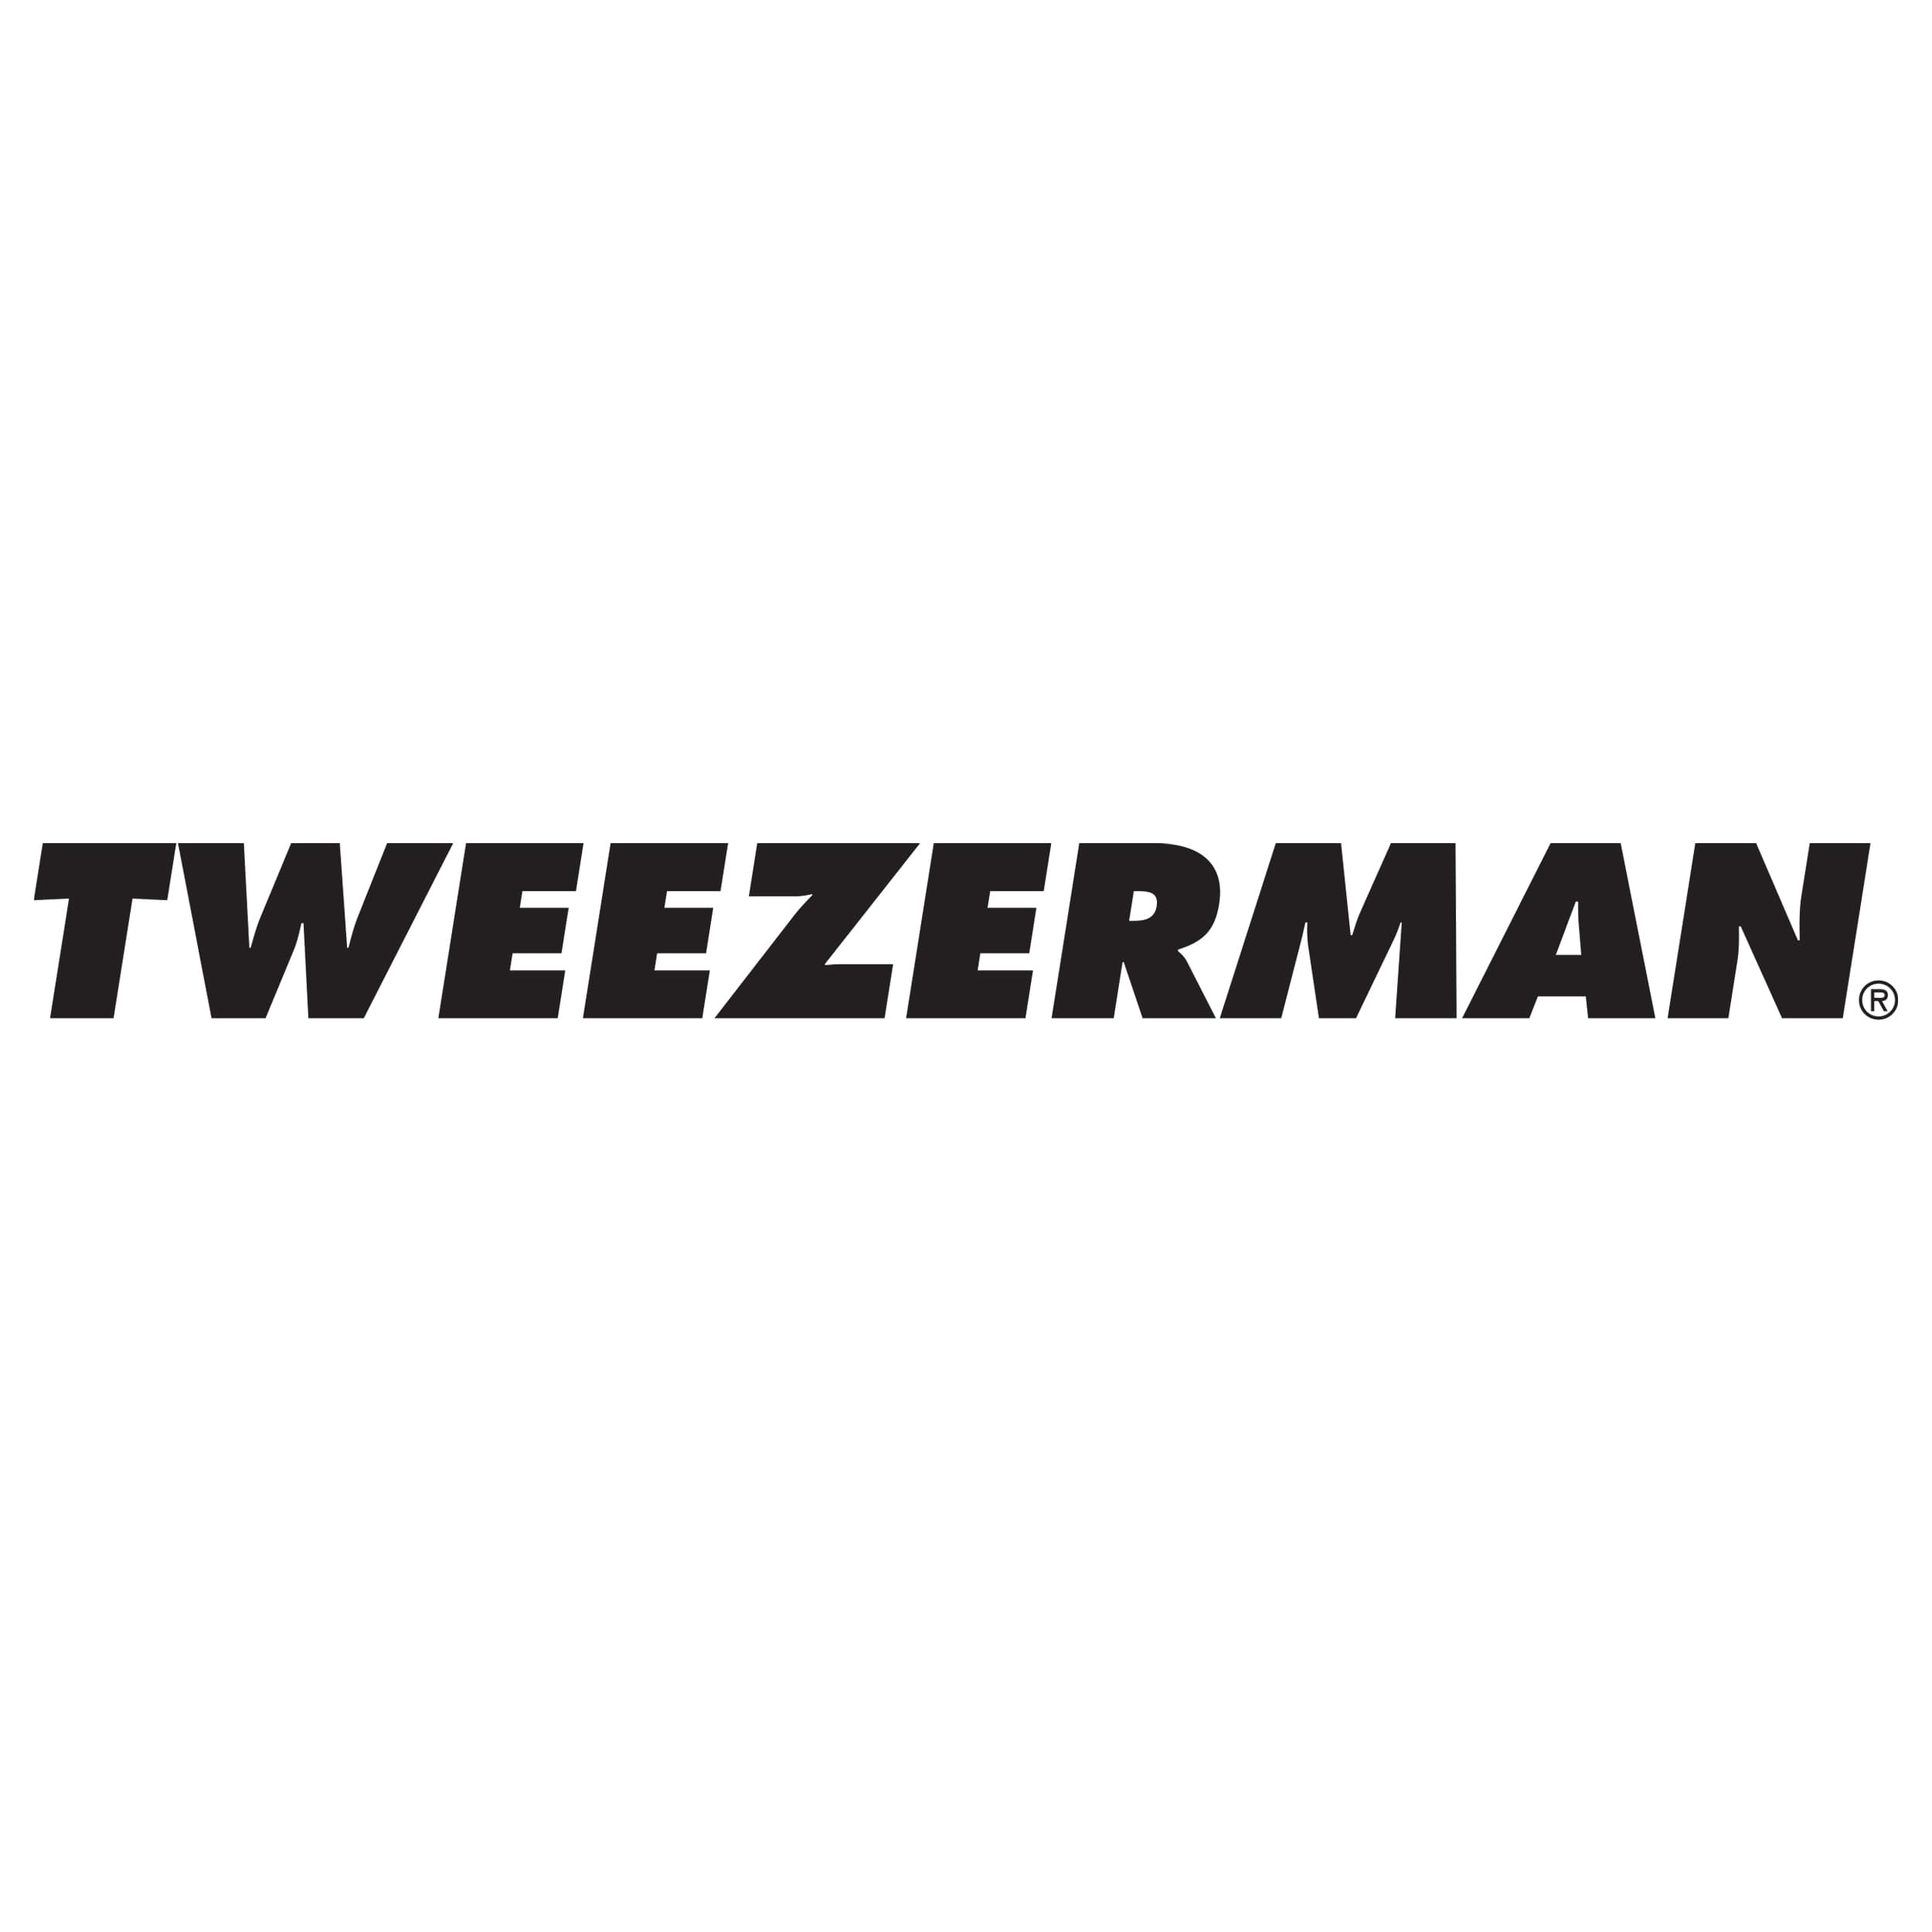 G.E.A.R. Precision Grip Toenail Clipper -  51581-MG - Tweezerman UK